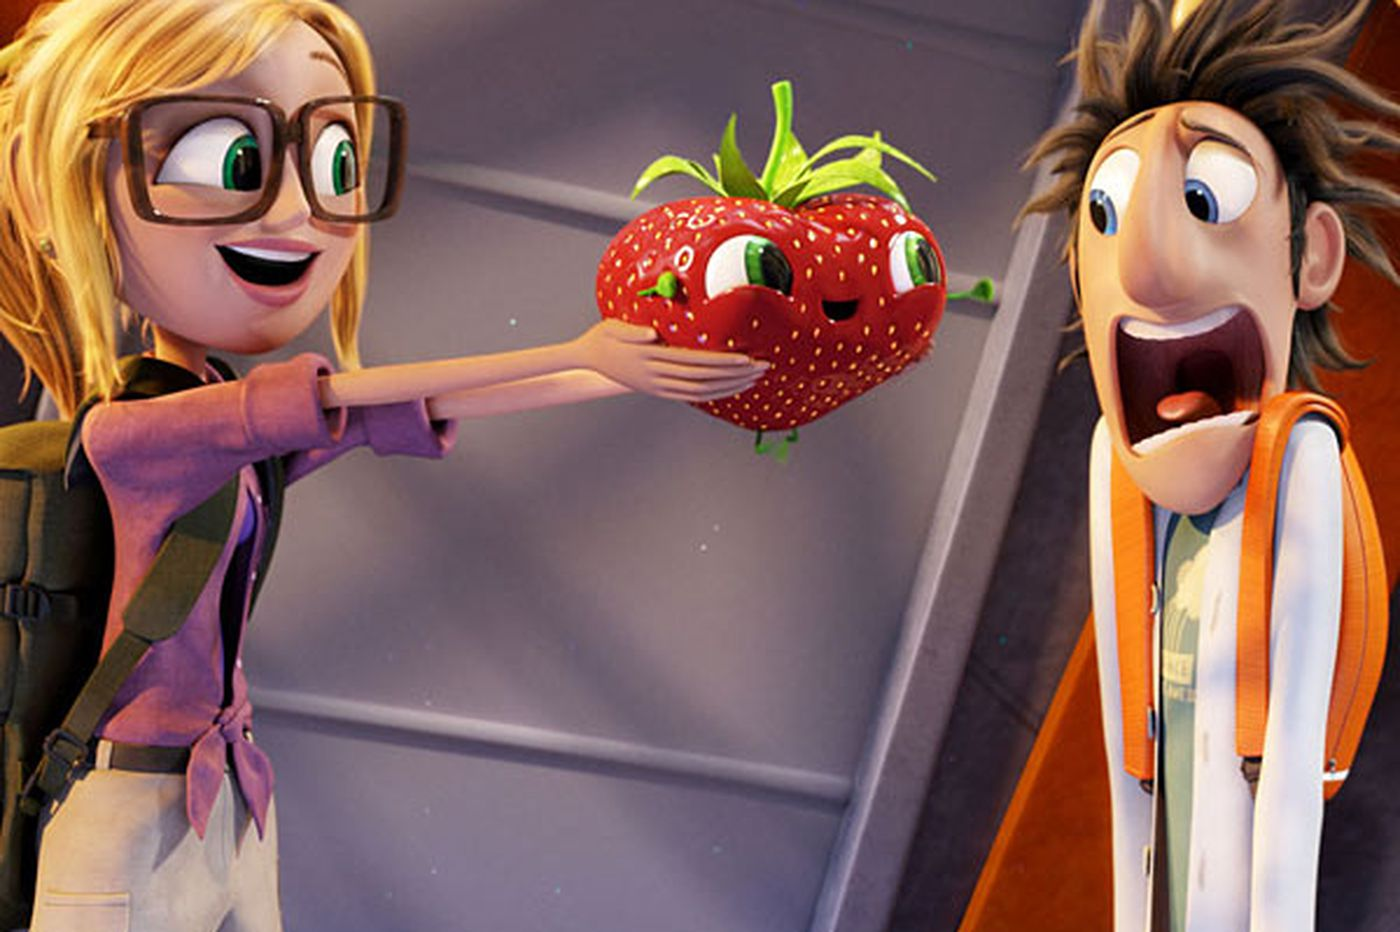 Kids will gobble up 'Cloudy With a Chance of Meatballs 2'